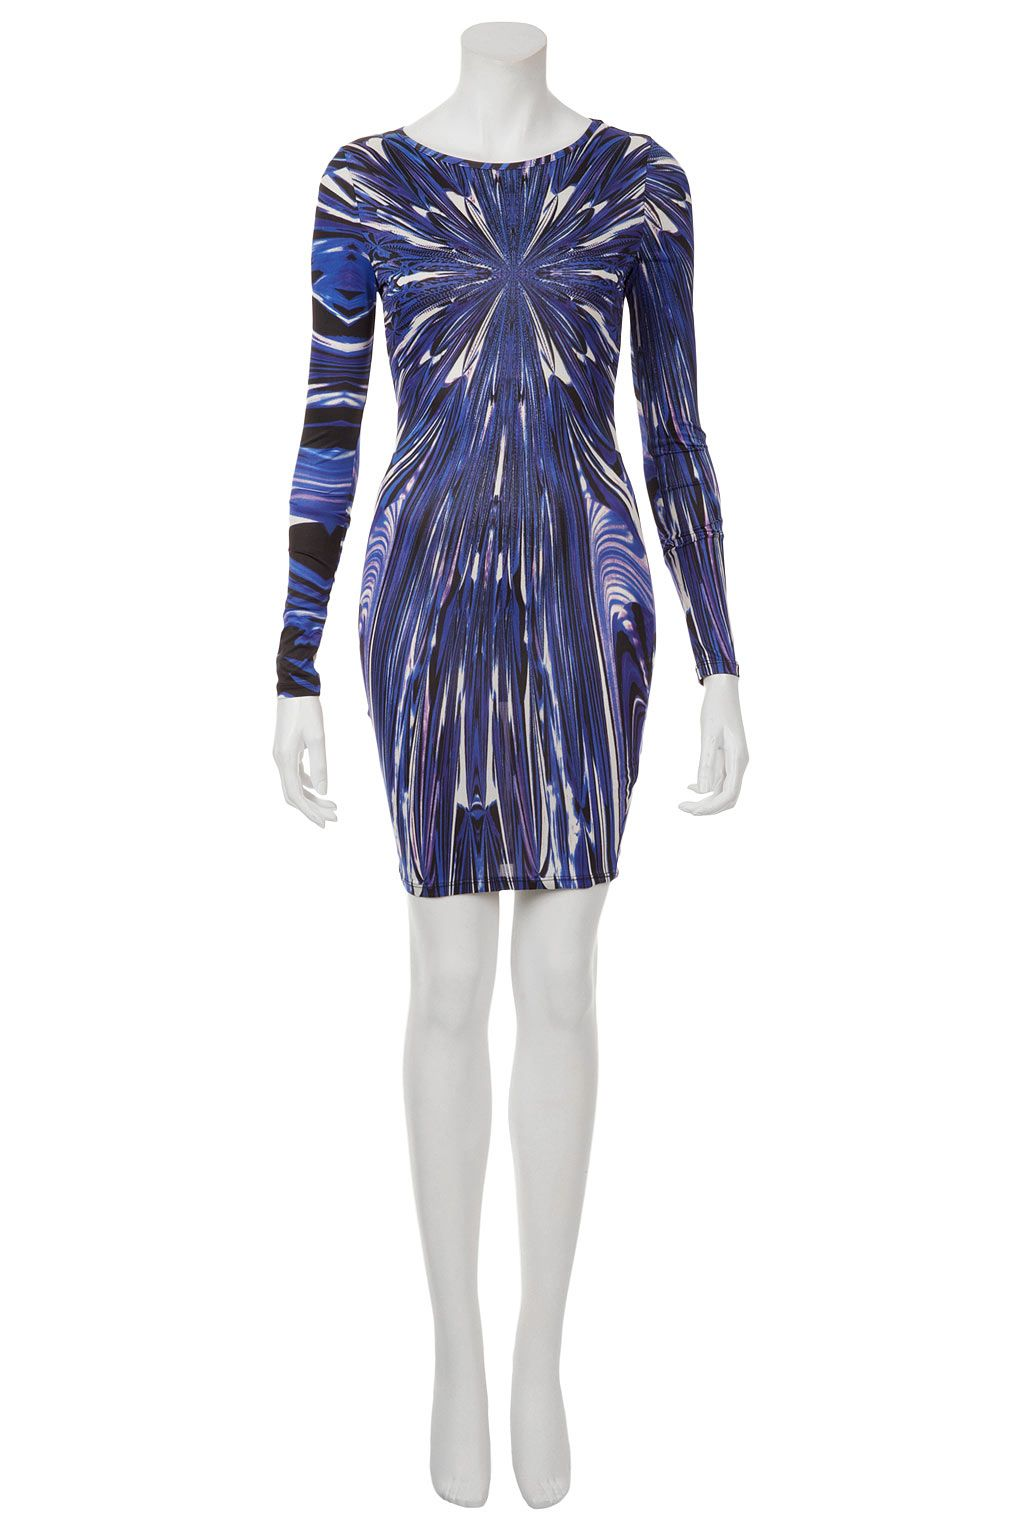 Topshop liquid graphic bodycon dress my style pinboard pinterest